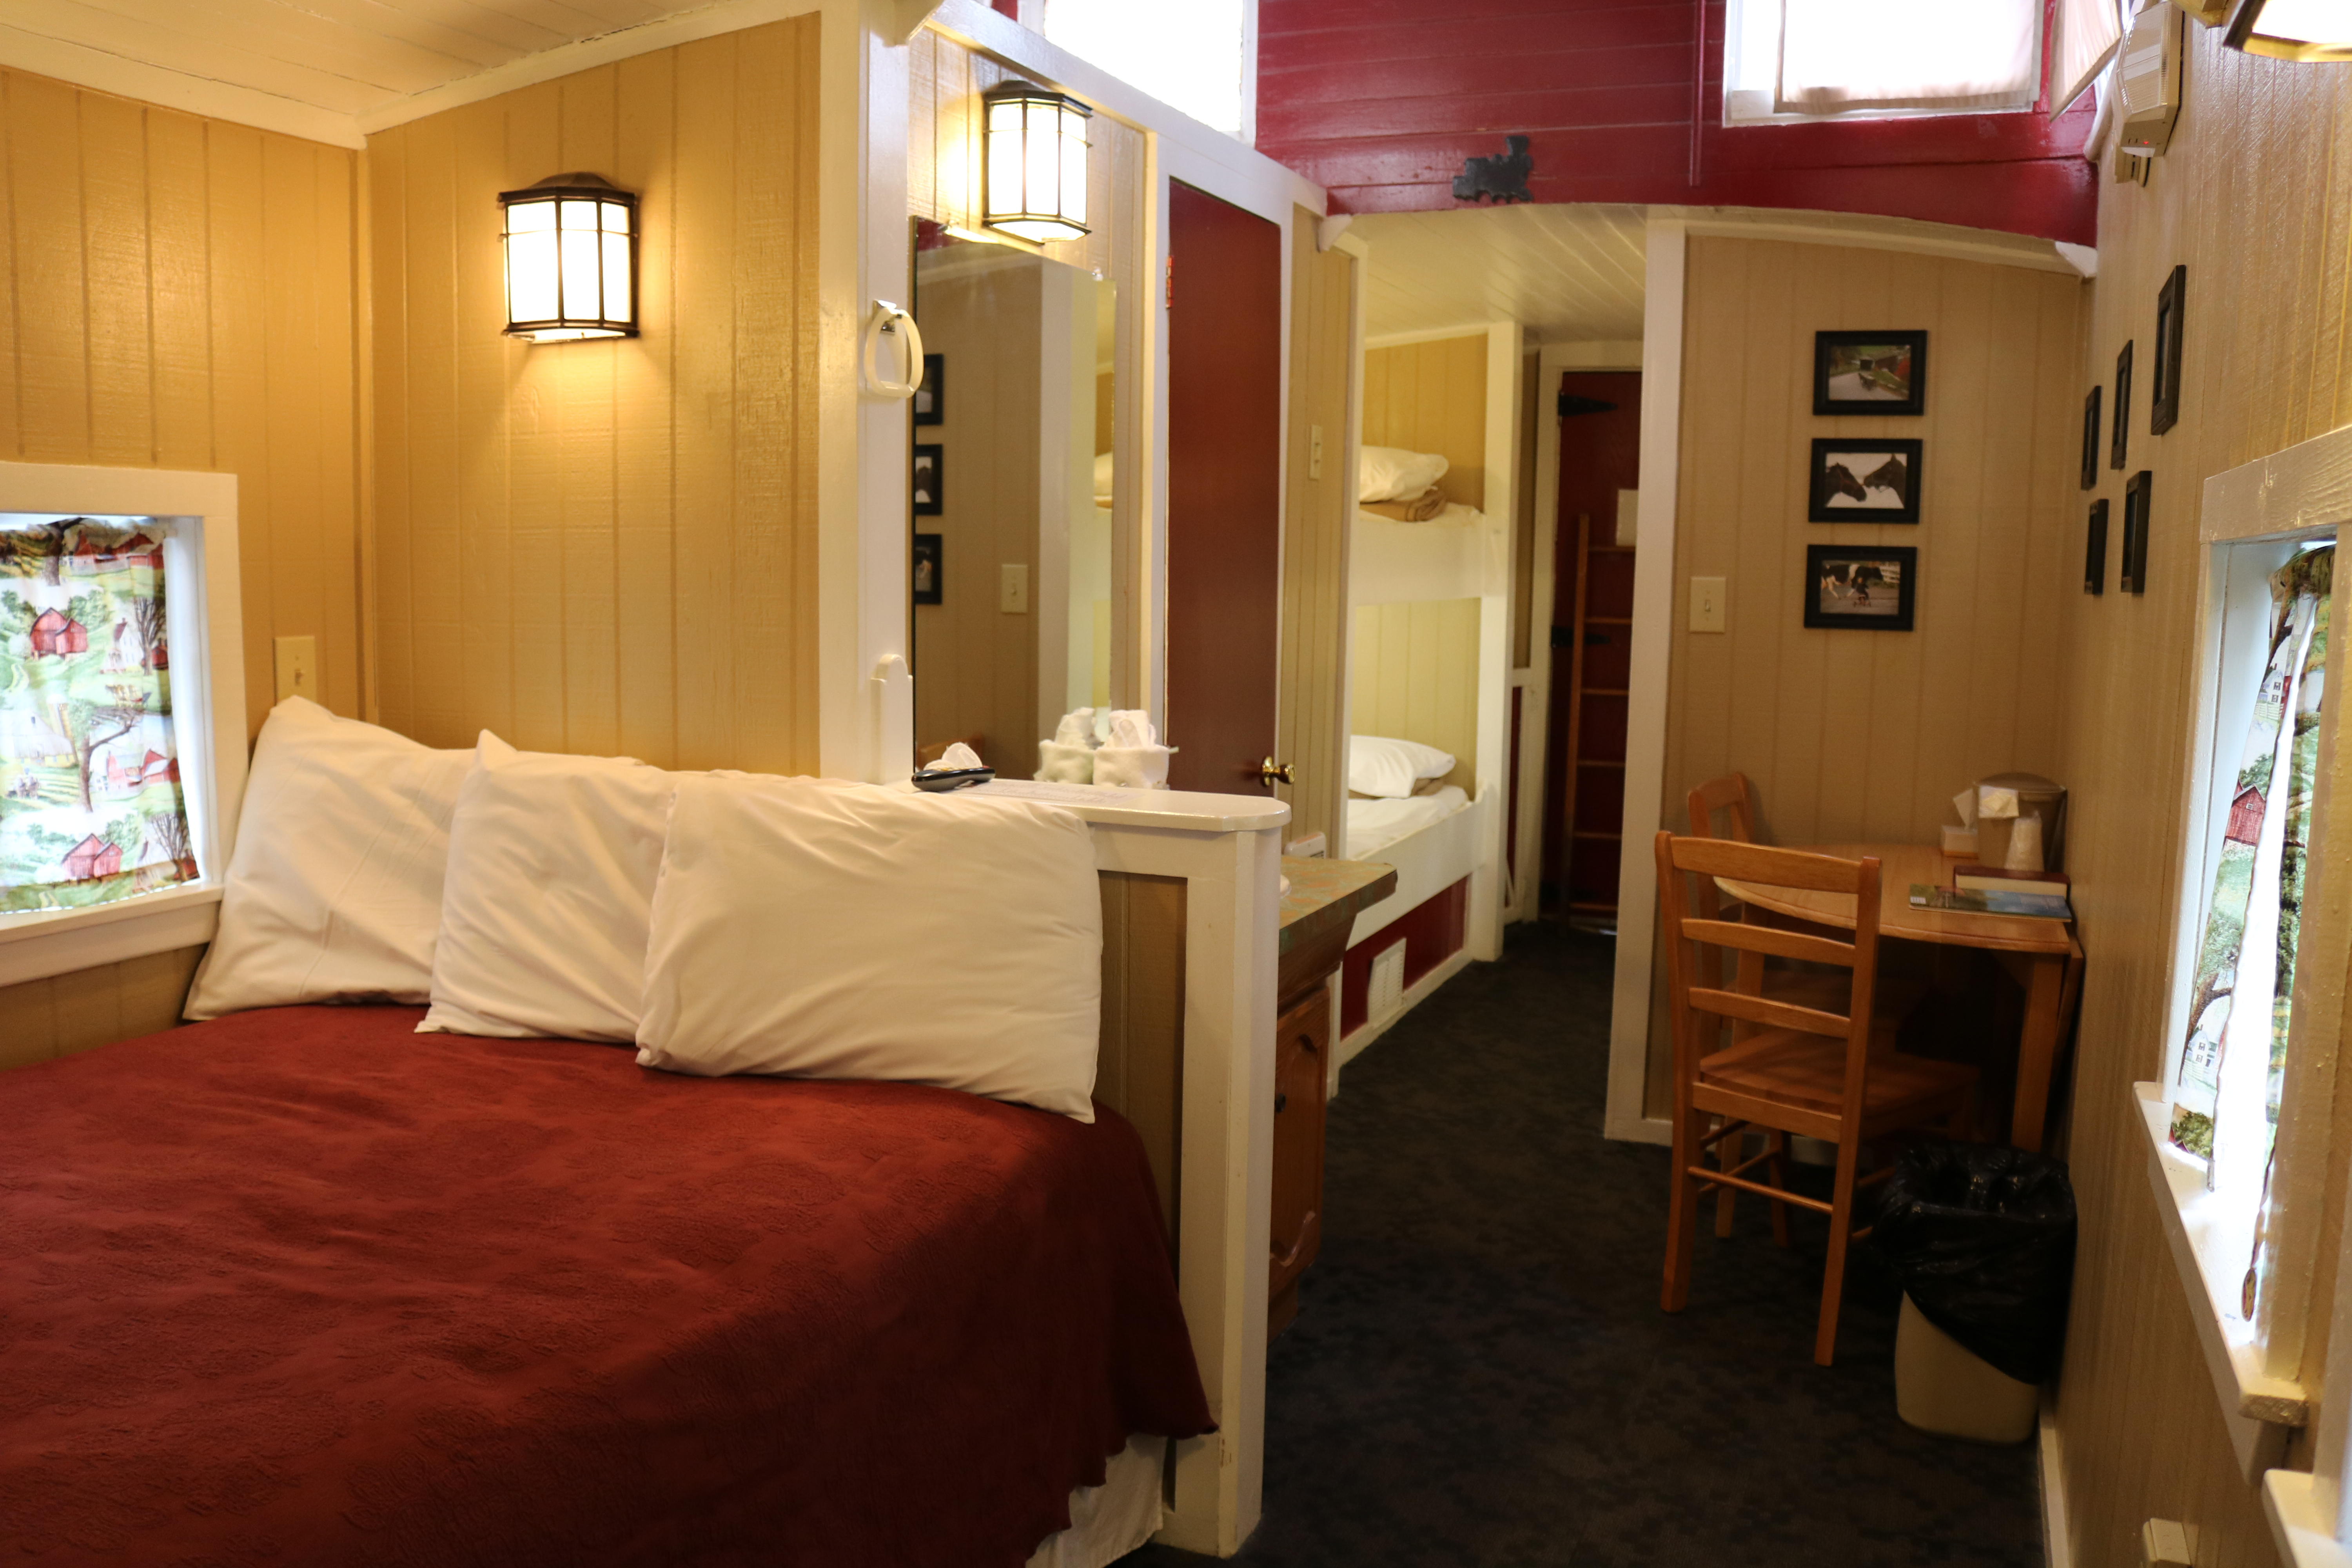 interior view of large family caboose motel room